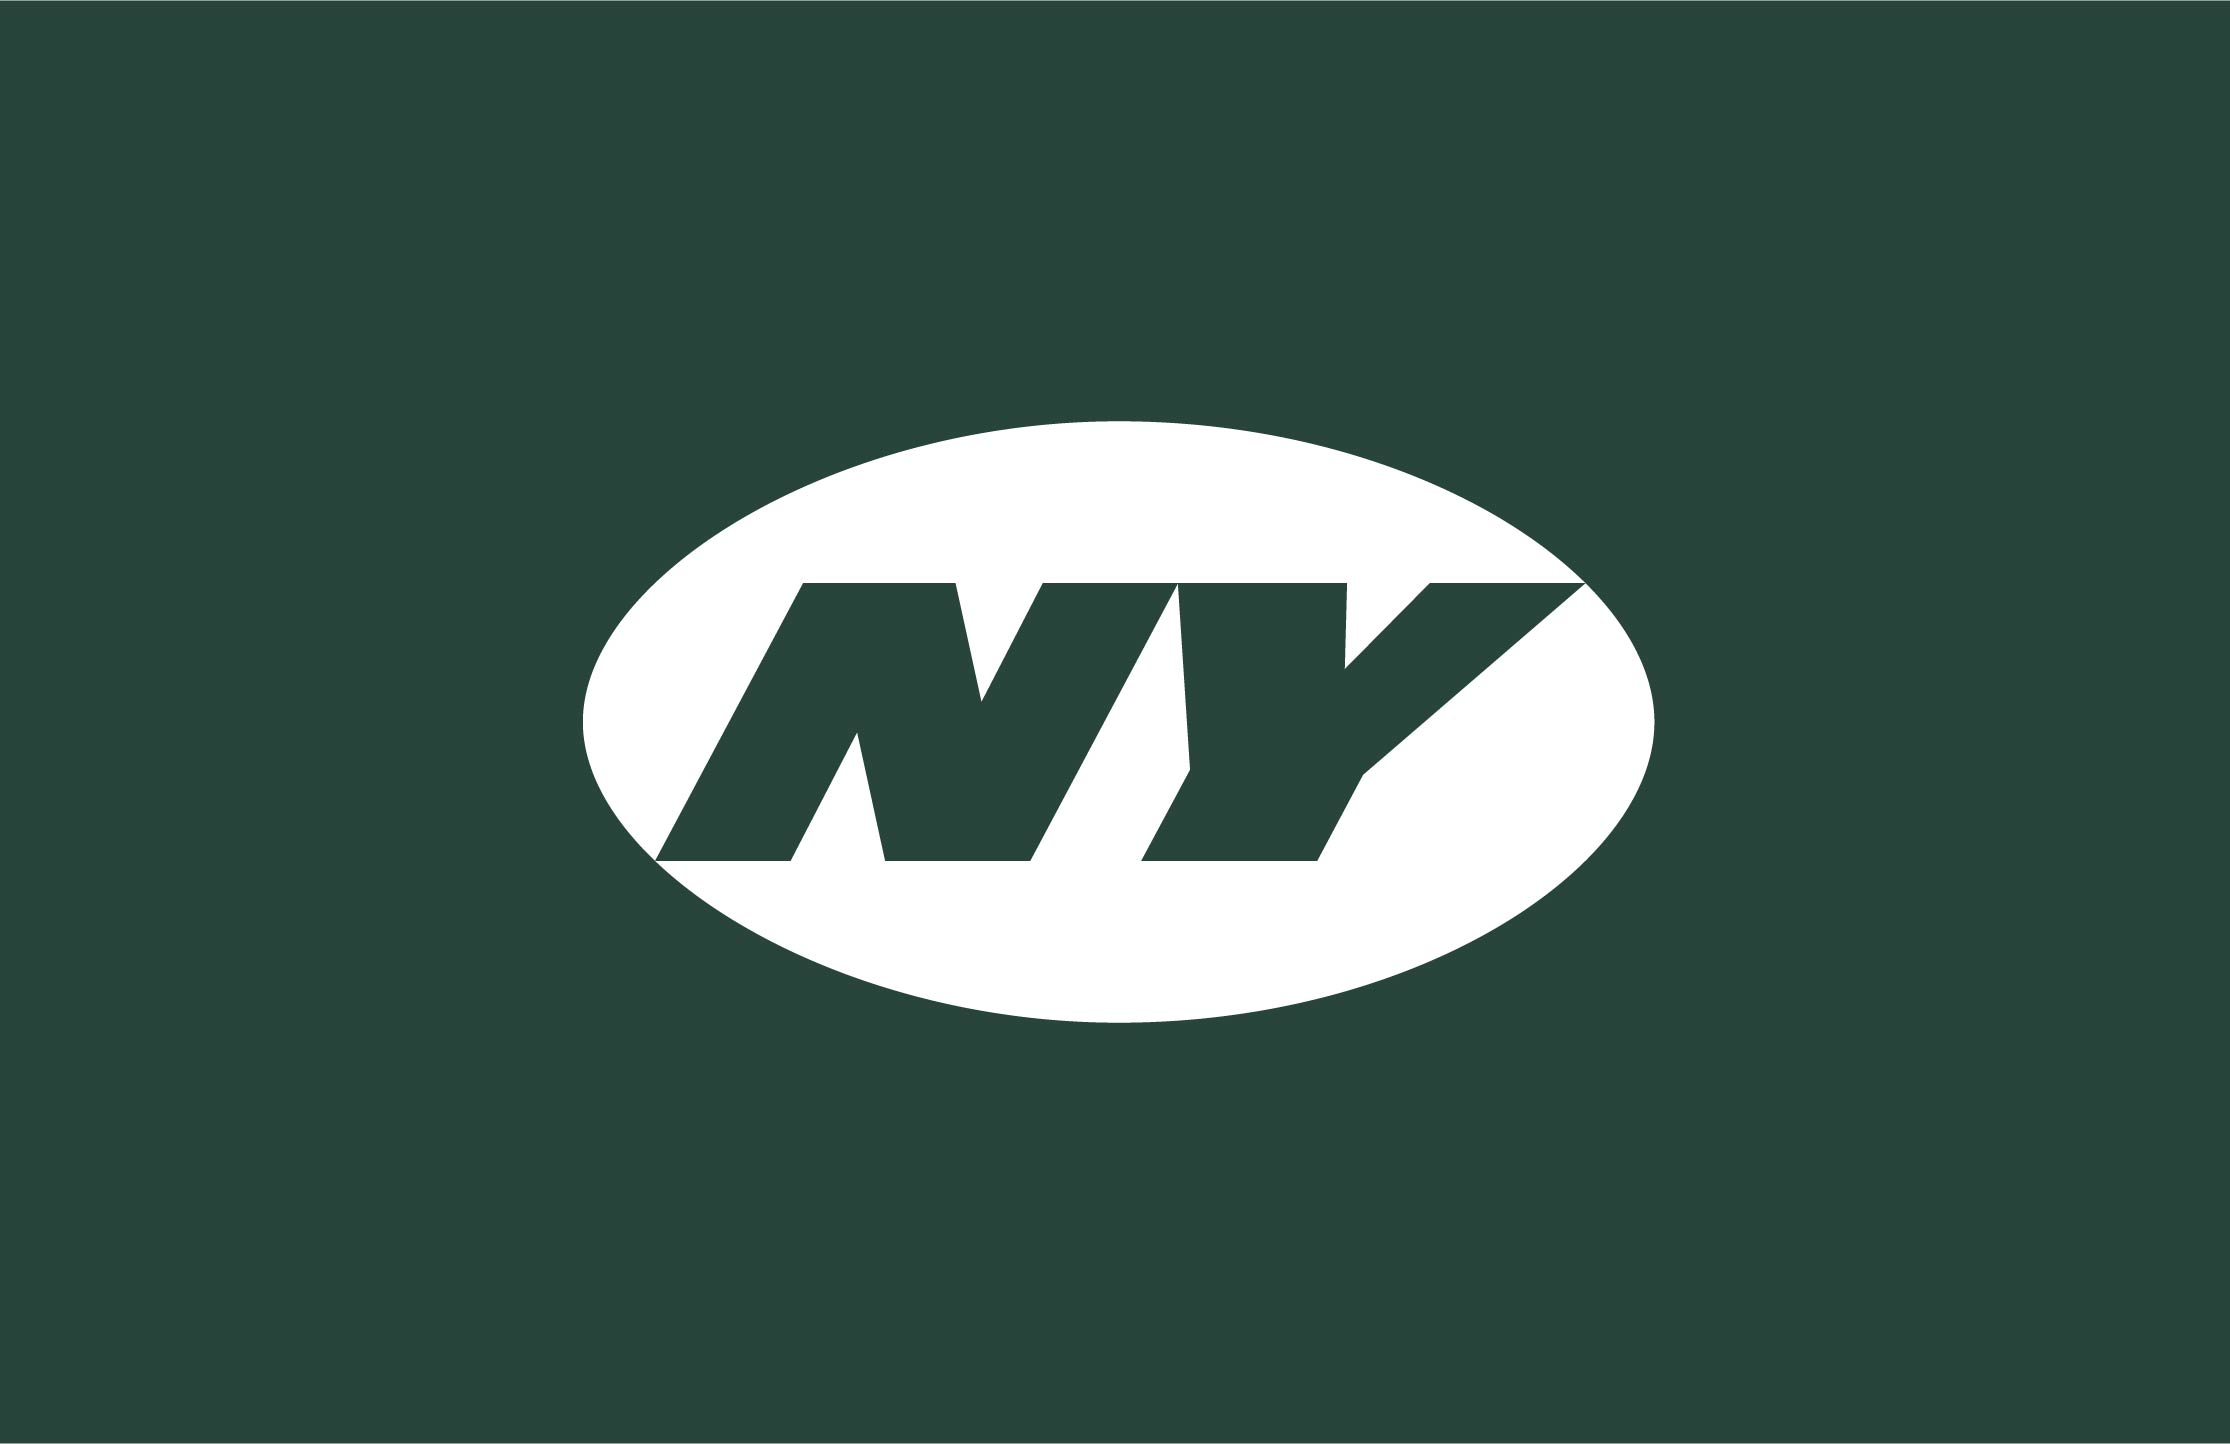 New York Jets Wallpaper Iphone Posted By Samantha Johnson